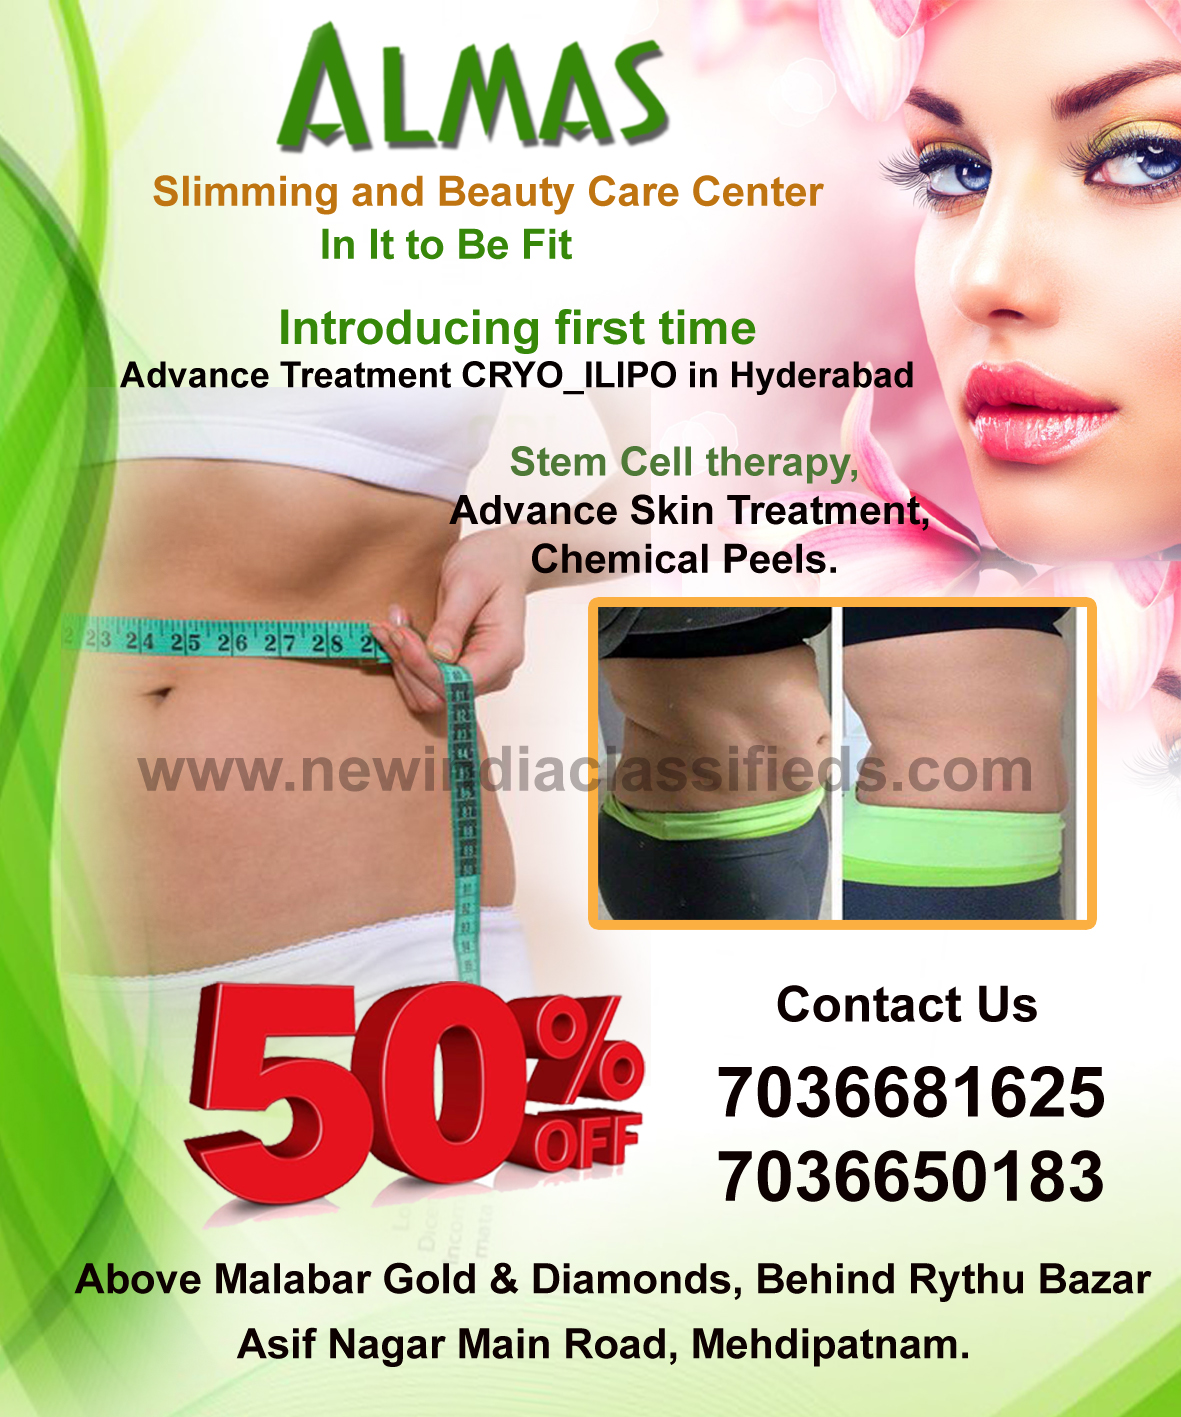 Slimming and beauty care center